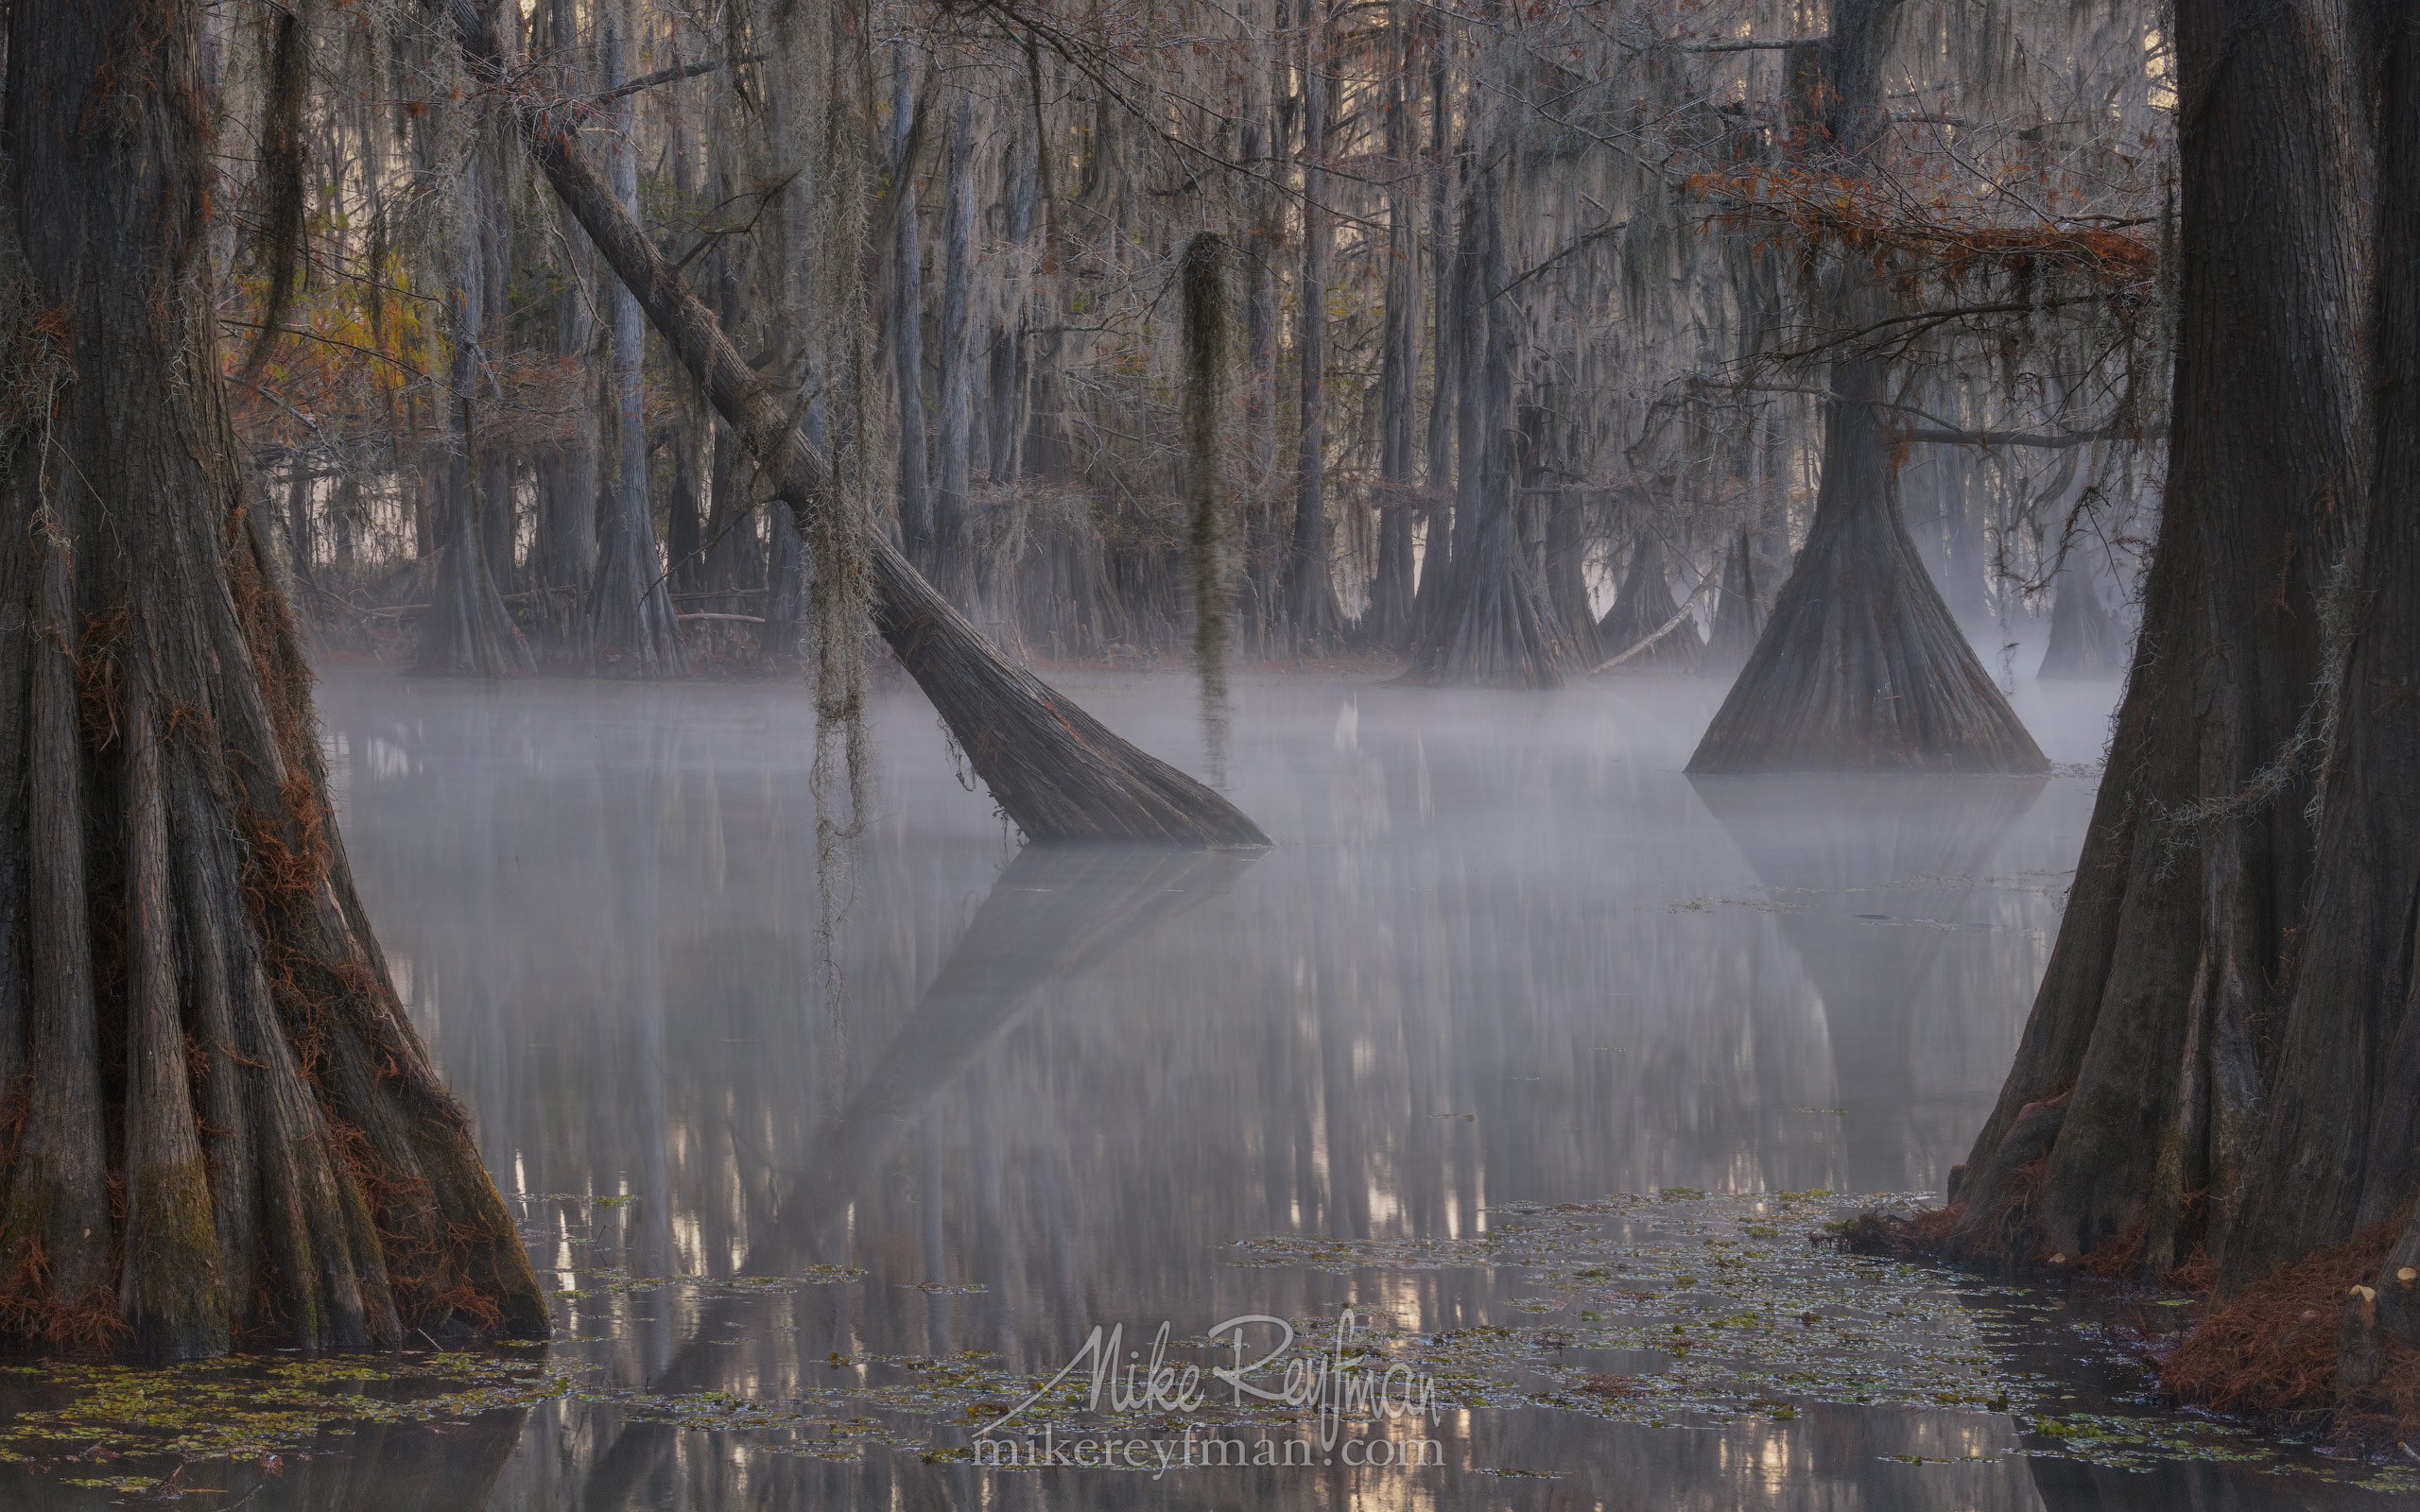 Bald Cypress trees in the swamp. Foggy morning on Caddo Lake, Texas, US 012-LT1-50A3291.jpg - Bold Cypress and Tupelo Trees in the swamps of Atchafalaya River Basin. Caddo, Martin and Fousse Lakes. Texas/Louisiana, USA. - Mike Reyfman Photography